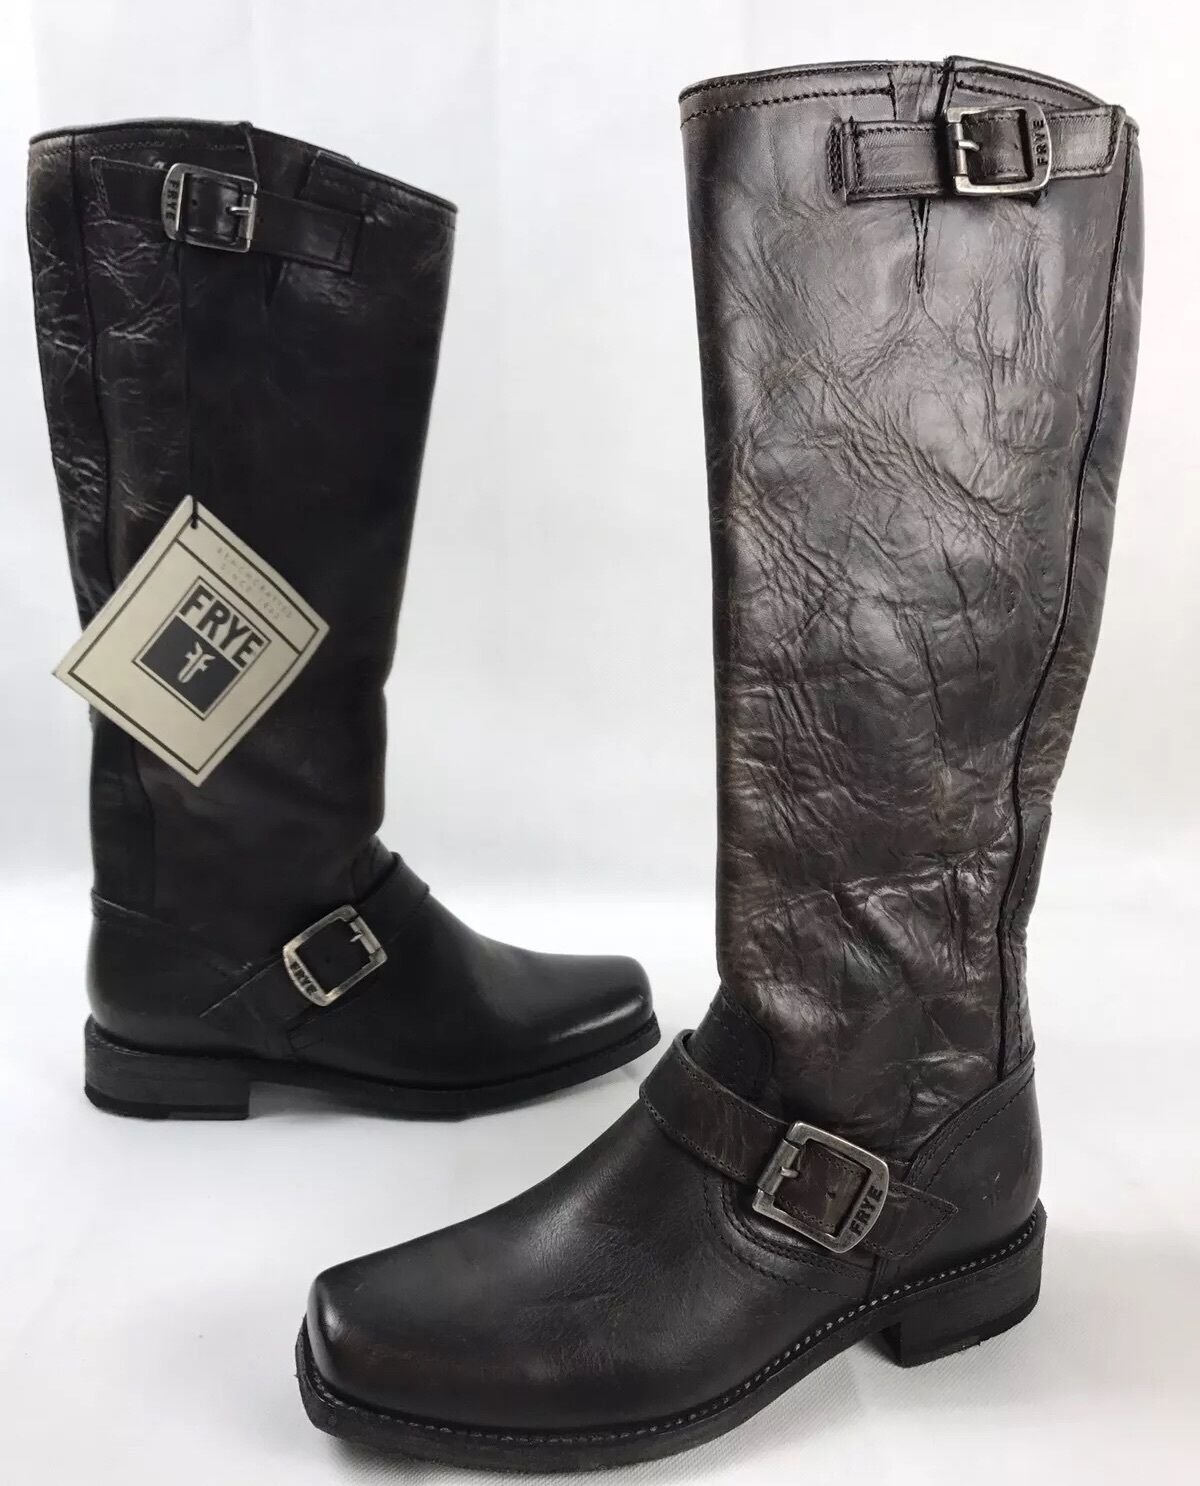 Nouveau Frye Smith Engineer Tall Cuir Équitation Bottes Anthracite Marron Taille 7 b